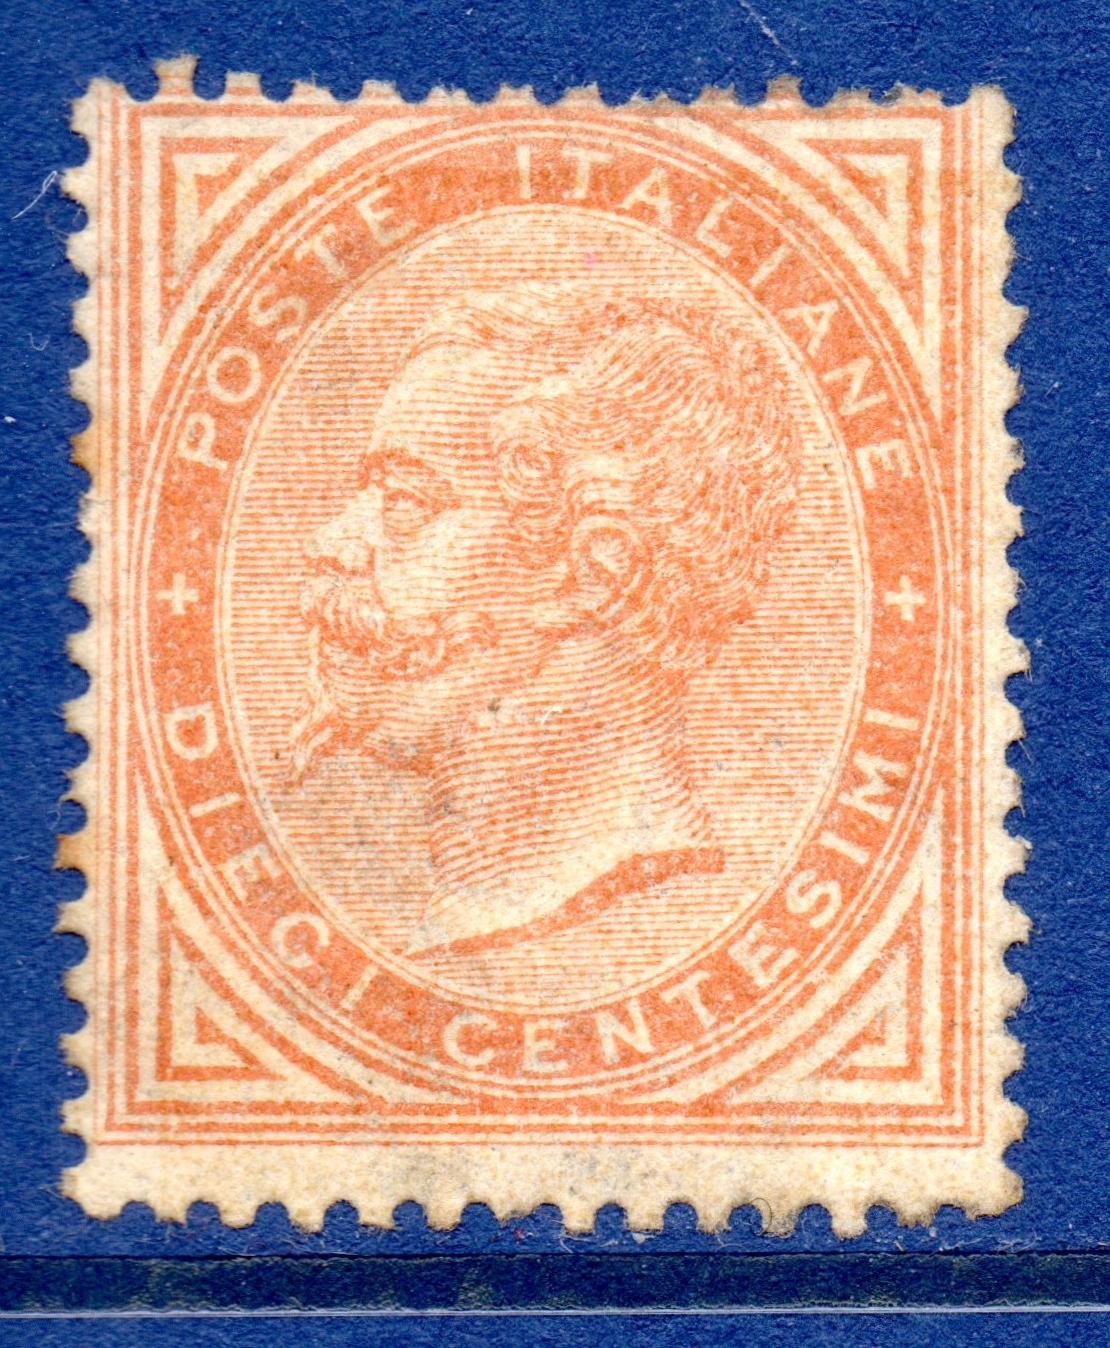 ITALY 1863 10c Buff Mint with Original Gum - Fresh and SCARCE Scott #27